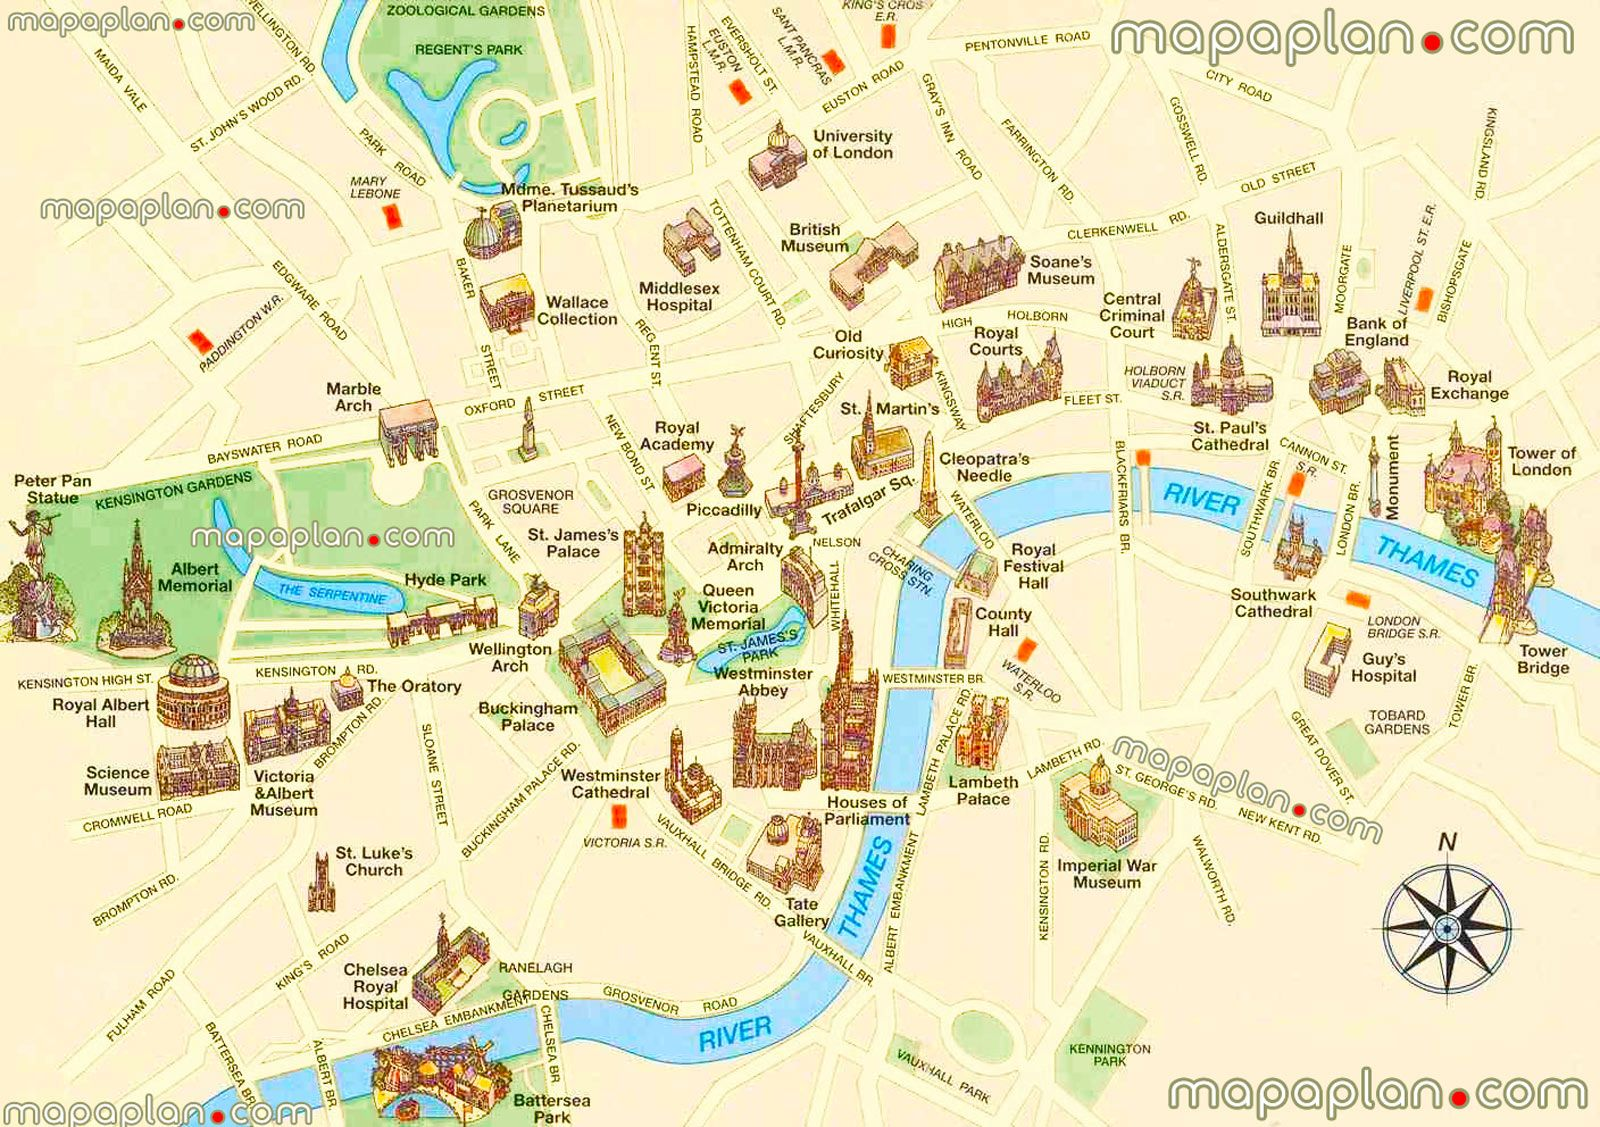 london locations other major landmarks most popular sites famous old destinations best free museums must do spotss london top tourist attractions map